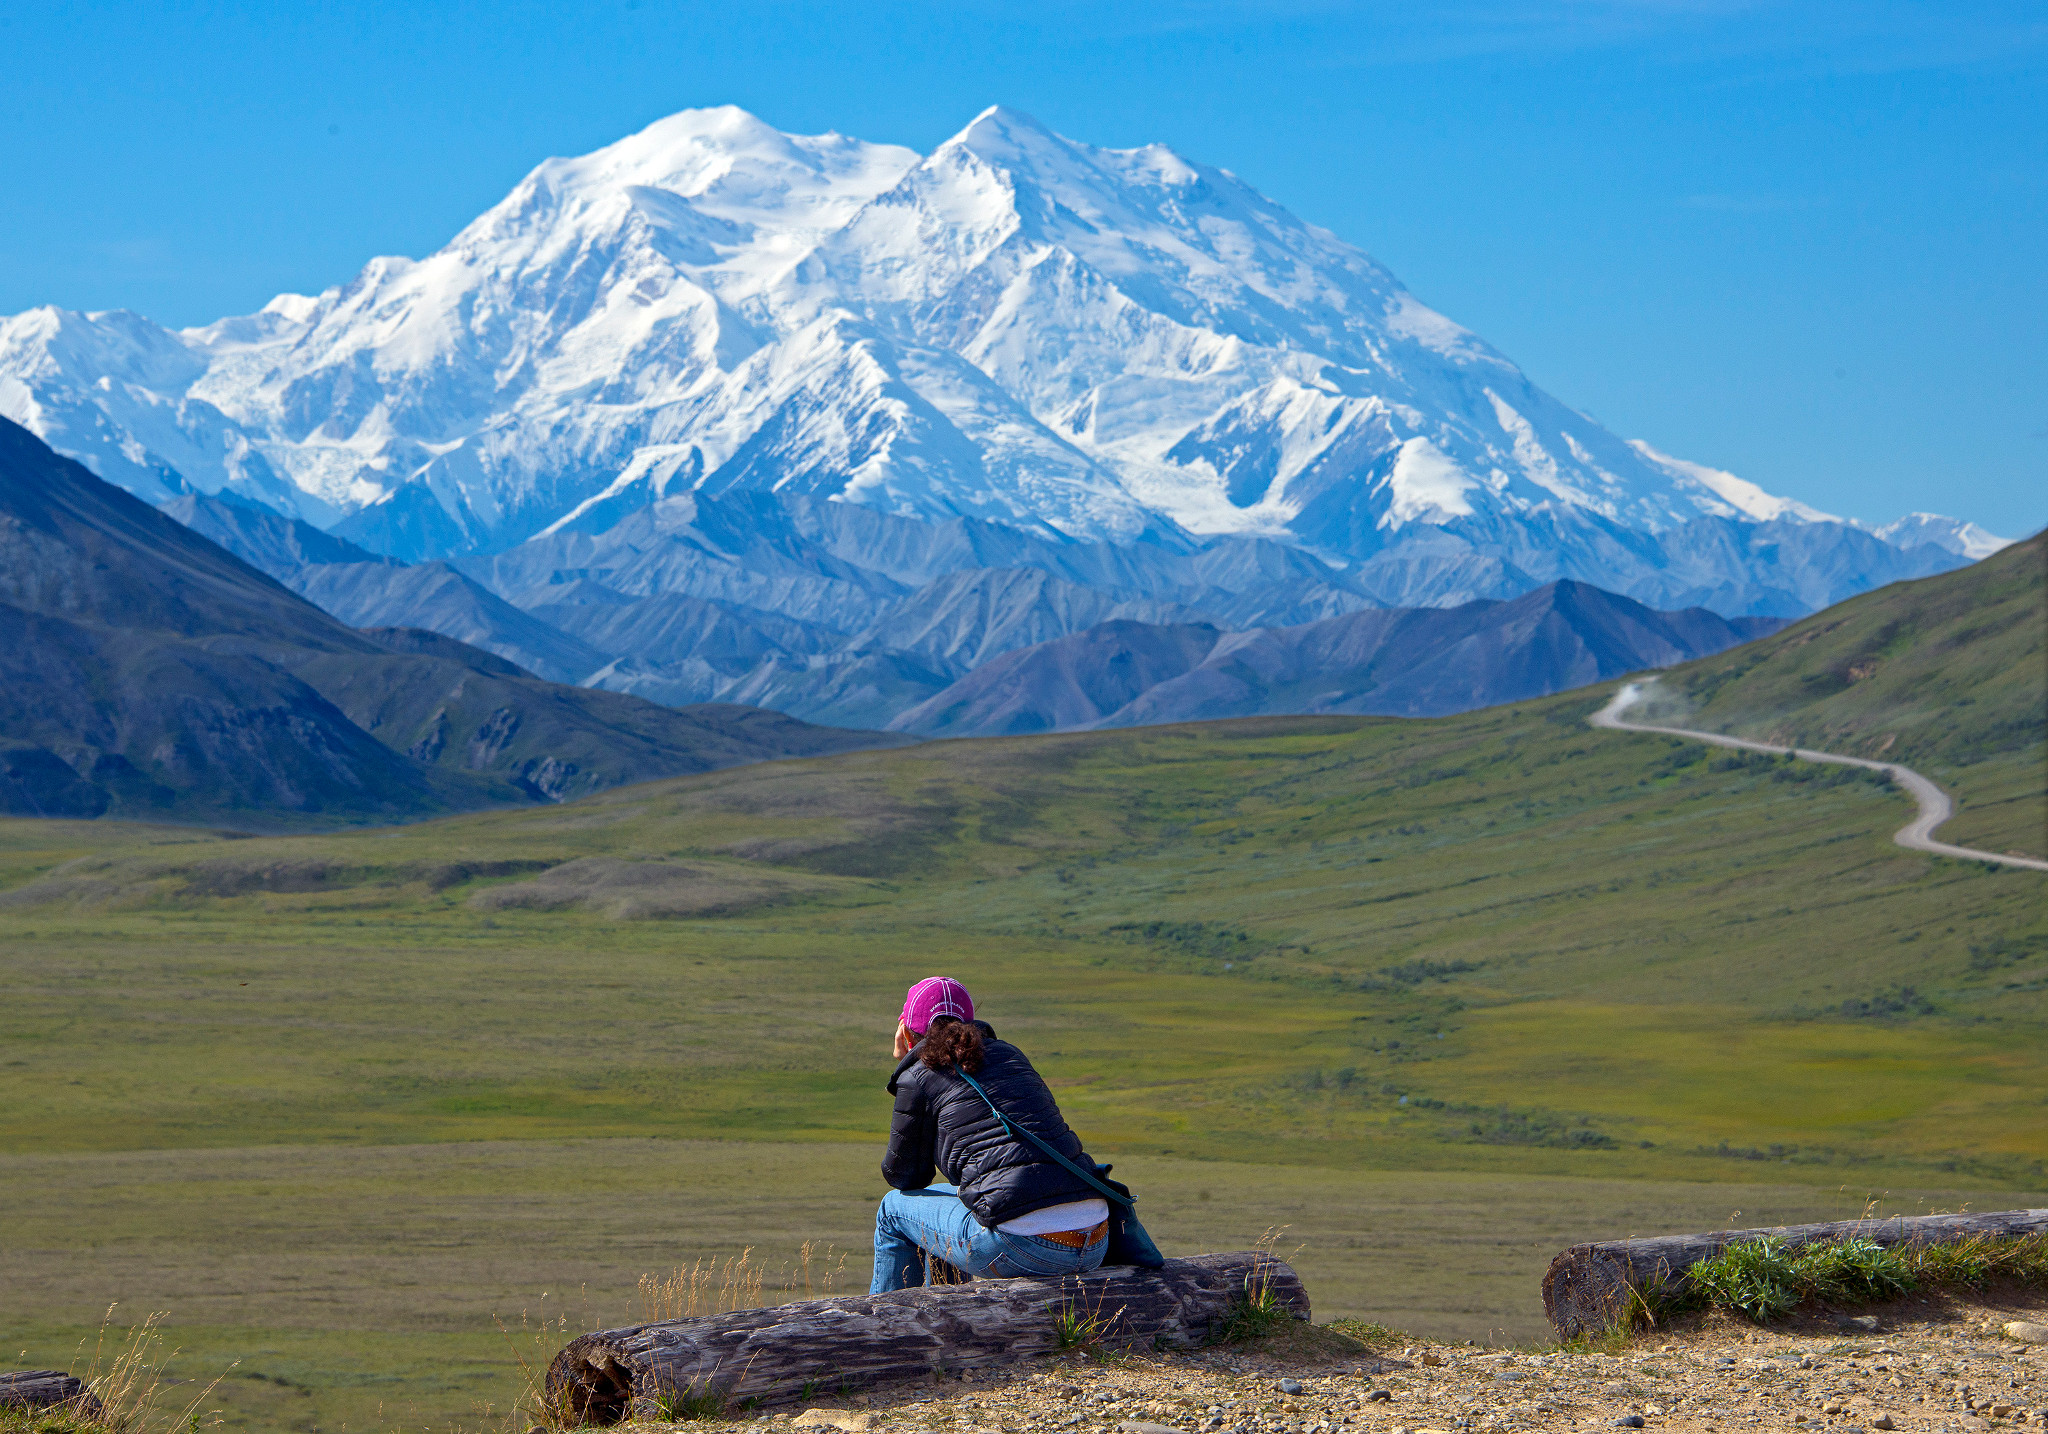 denali-mountain-alaska-photographer-andy-newman